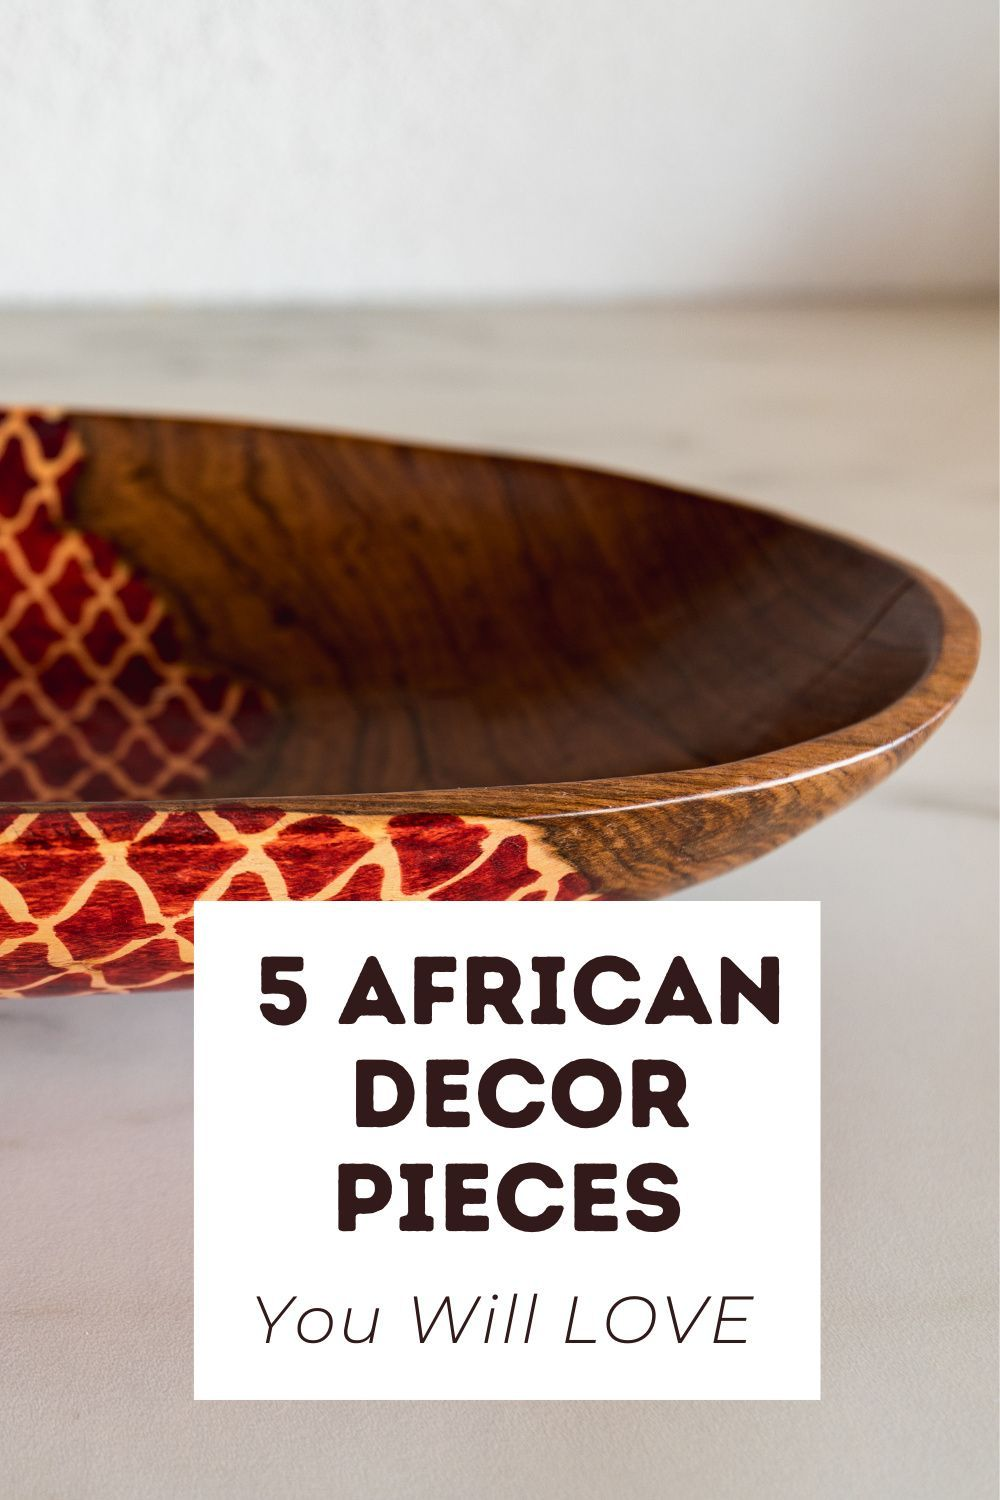 We've got 5 African decor pieces to help you breathe new life into your queendom! Need something functional and fabulous? Are you looking to add a touch of culture to your casa? From the home office to the boudoir, we've found 5 African decor pieces you'll love. #africandecor #africanfashion #africandesign